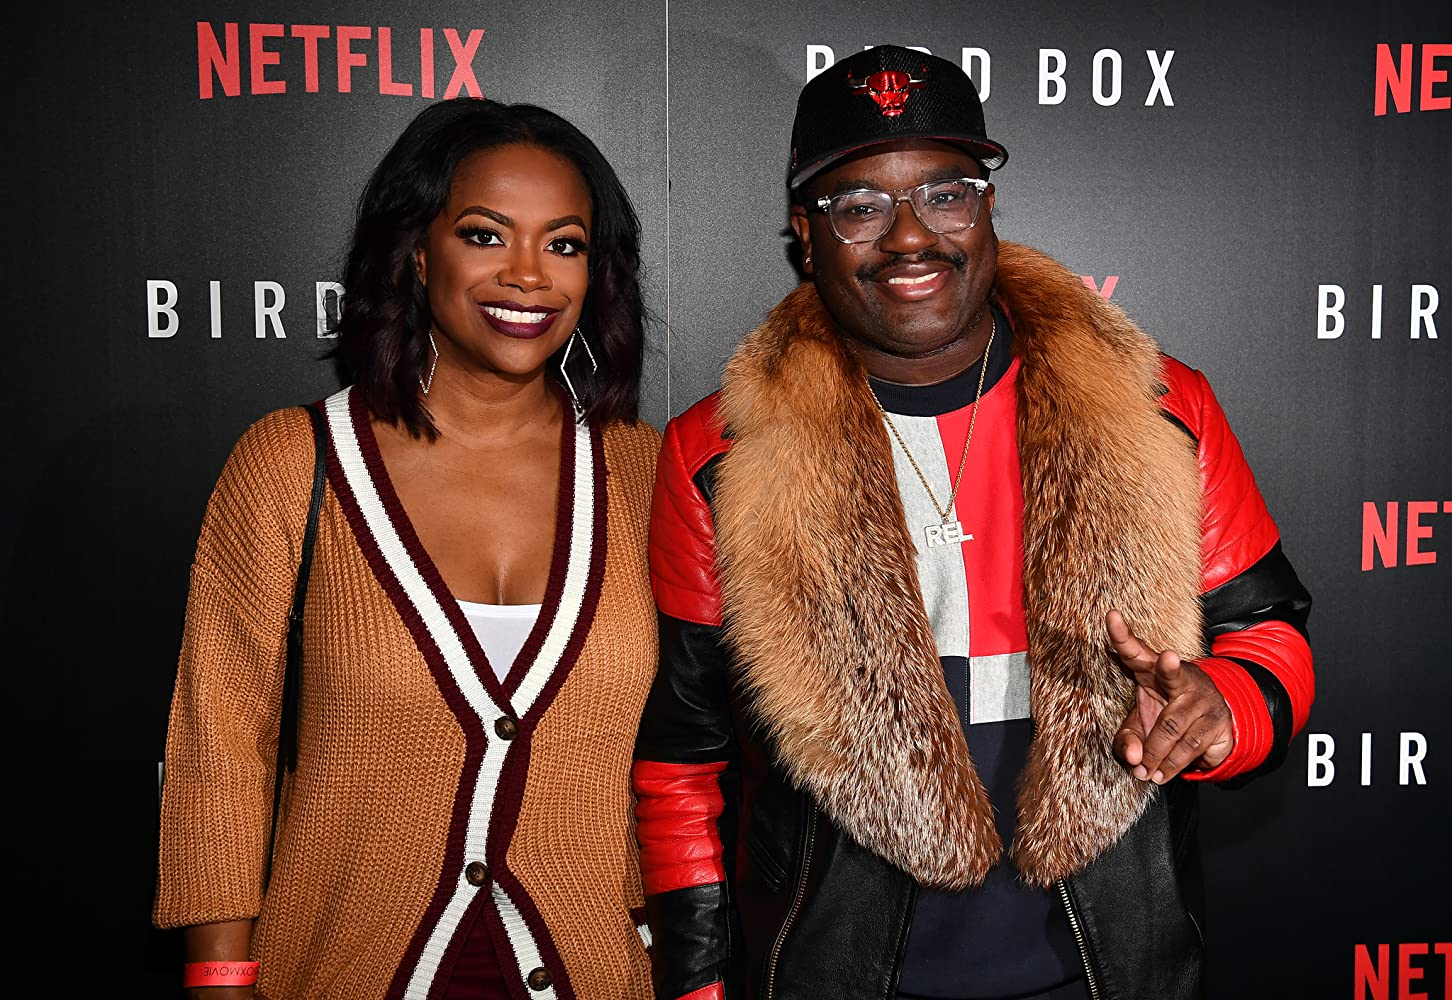 Kandi Burruss and Lil Rel Howery